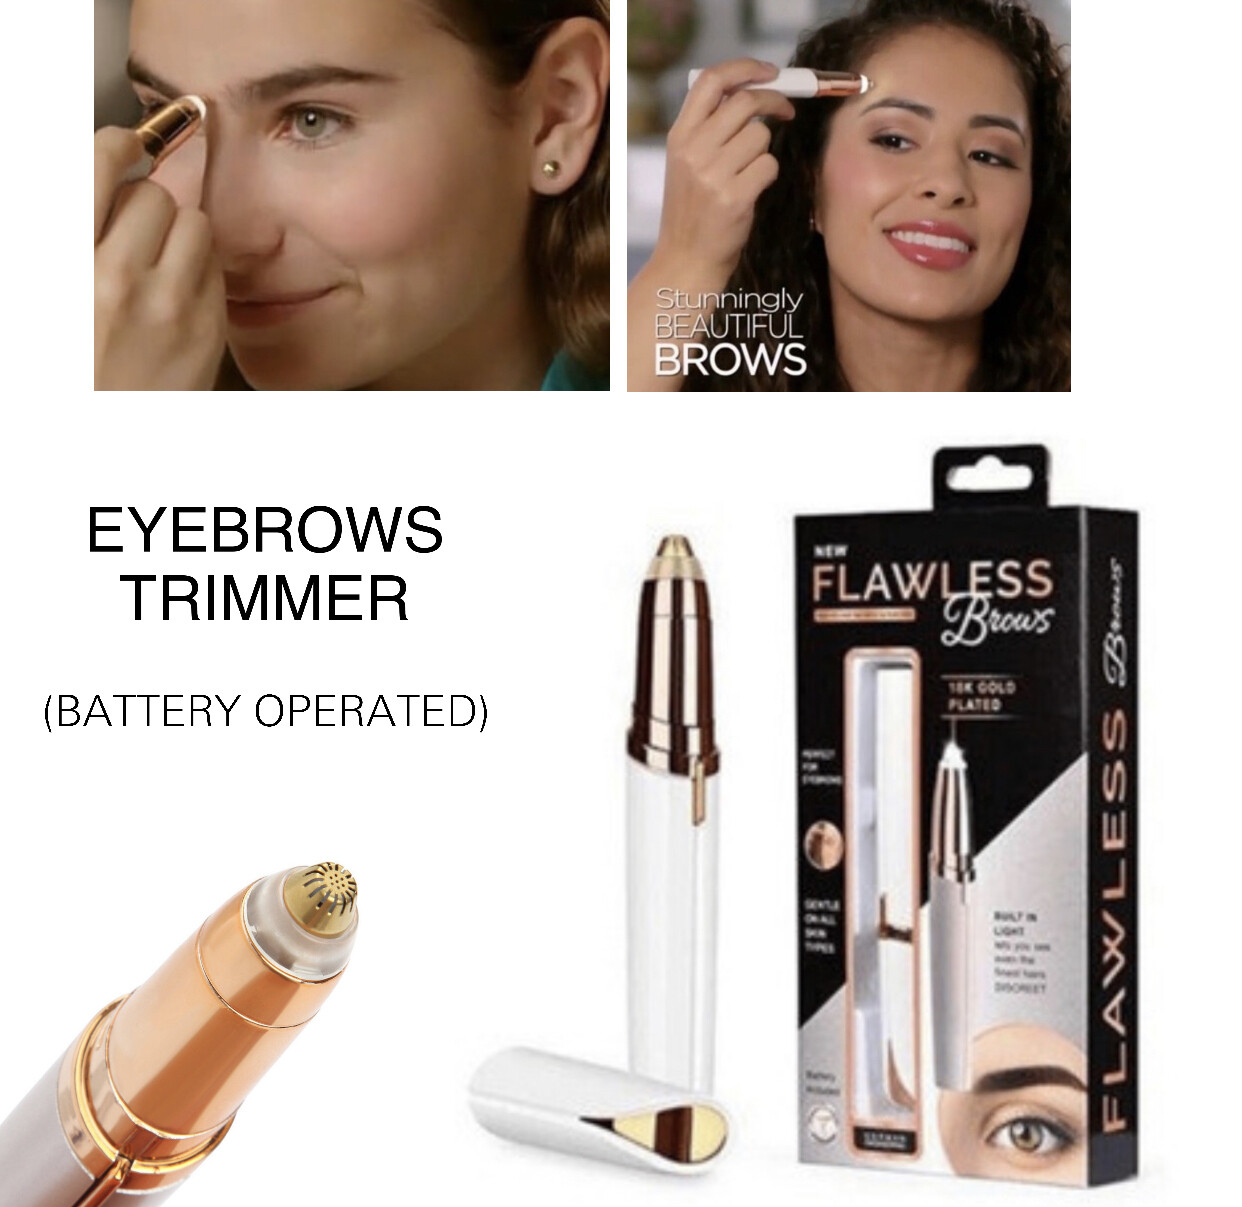 Eyebrows Trimmer